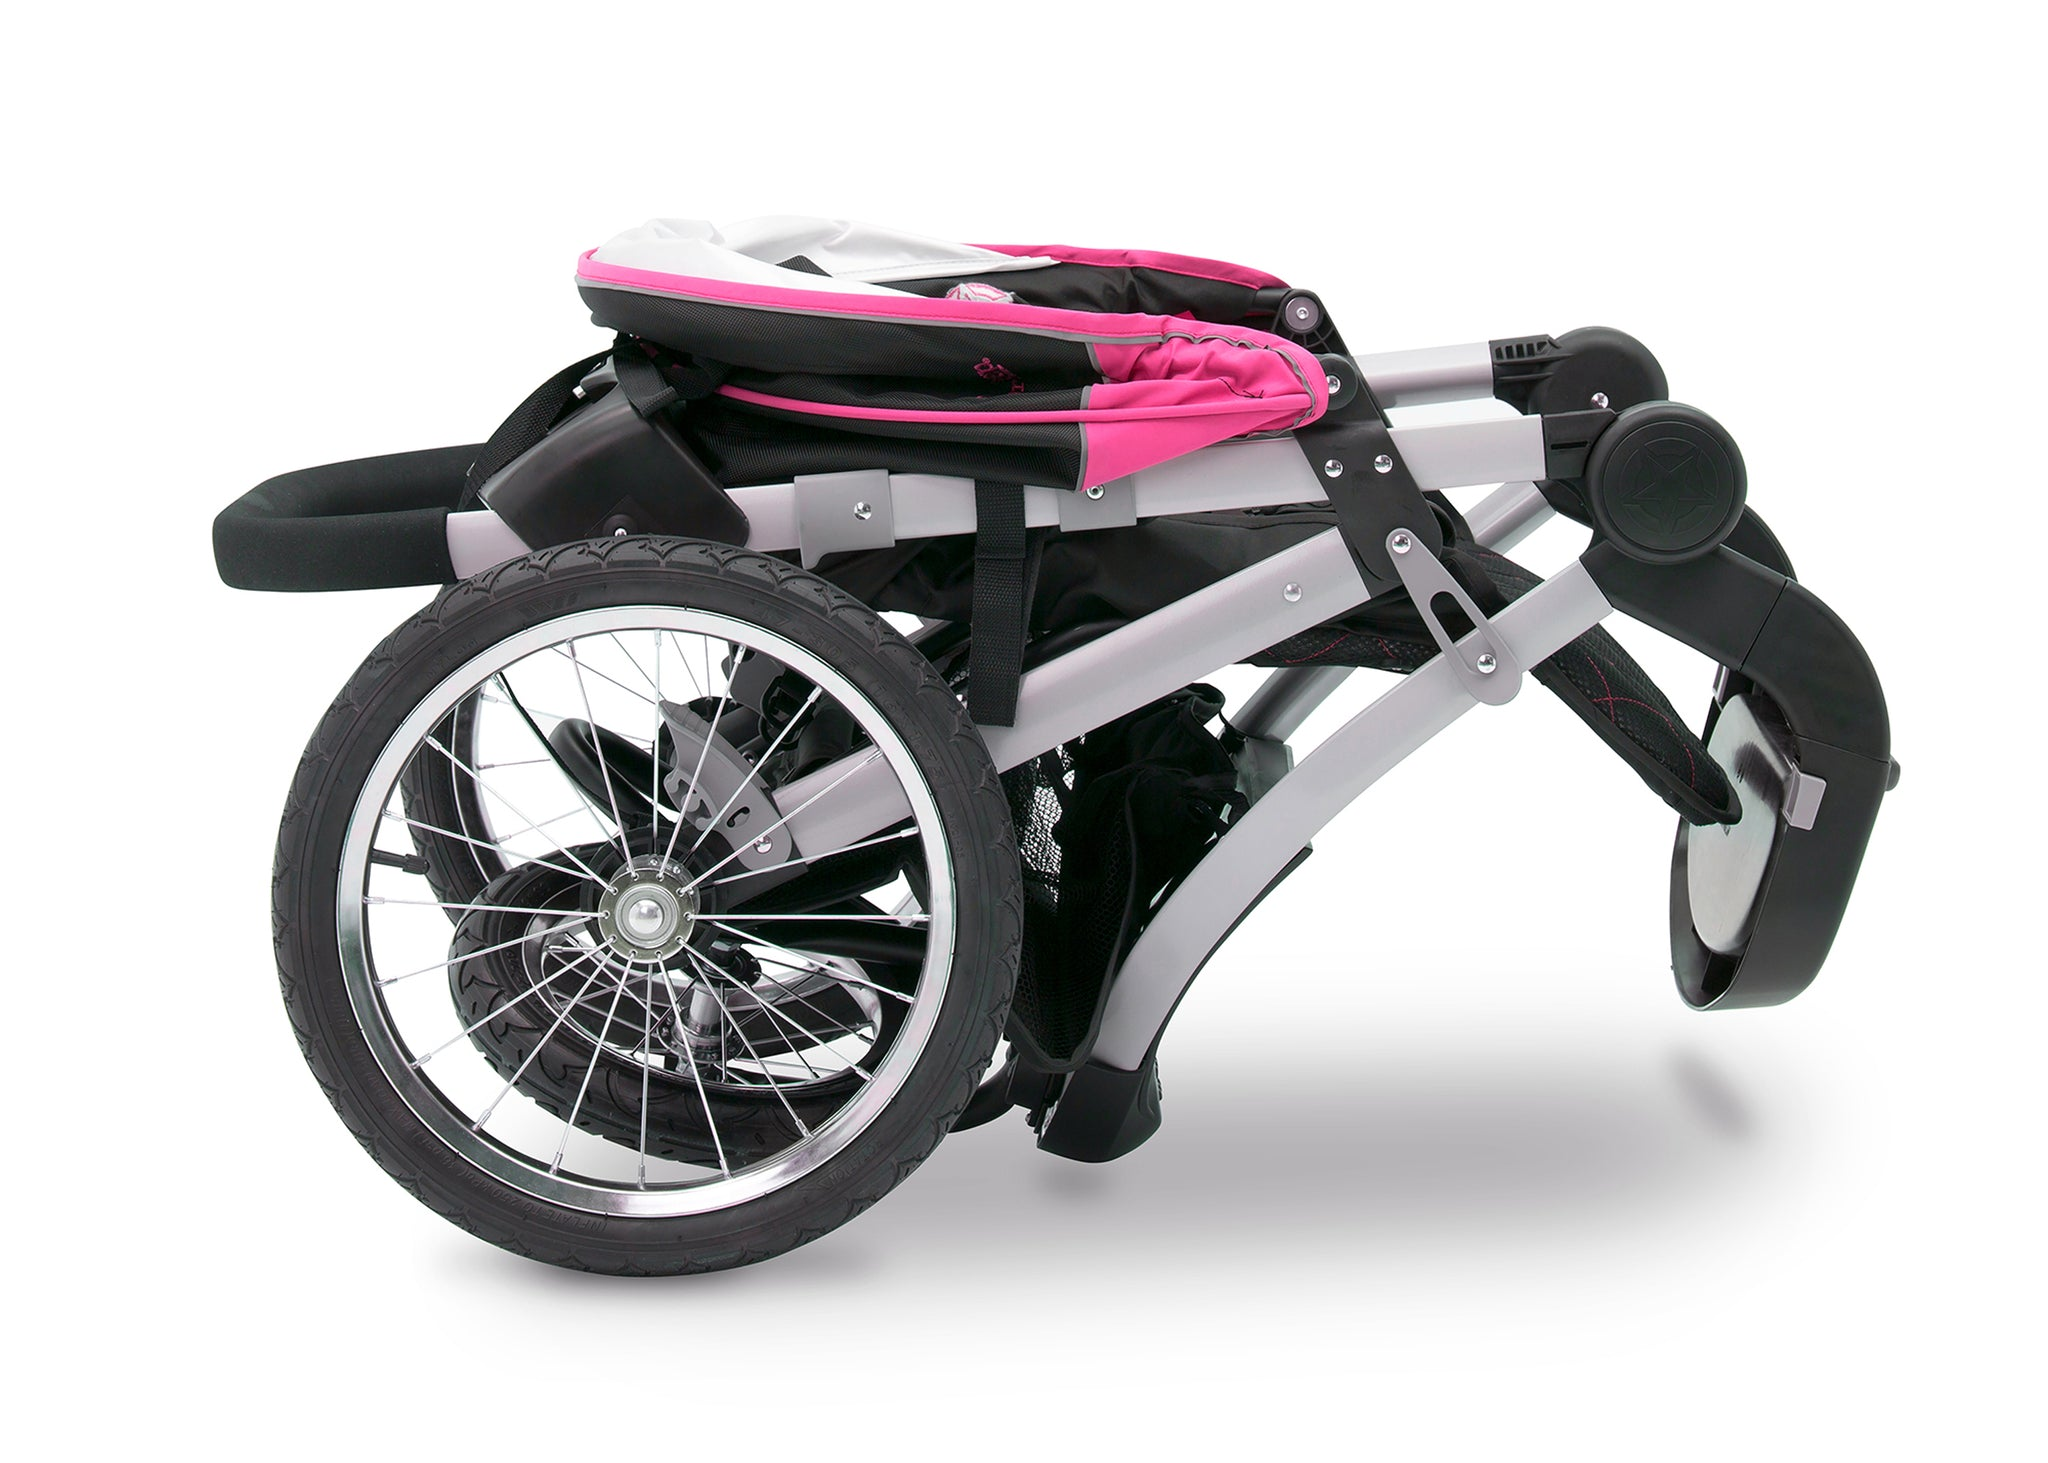 Jeep Unlimited Range Jogger by Delta Children, Trek Pink Tonal (656), can be folded quickly and compactly